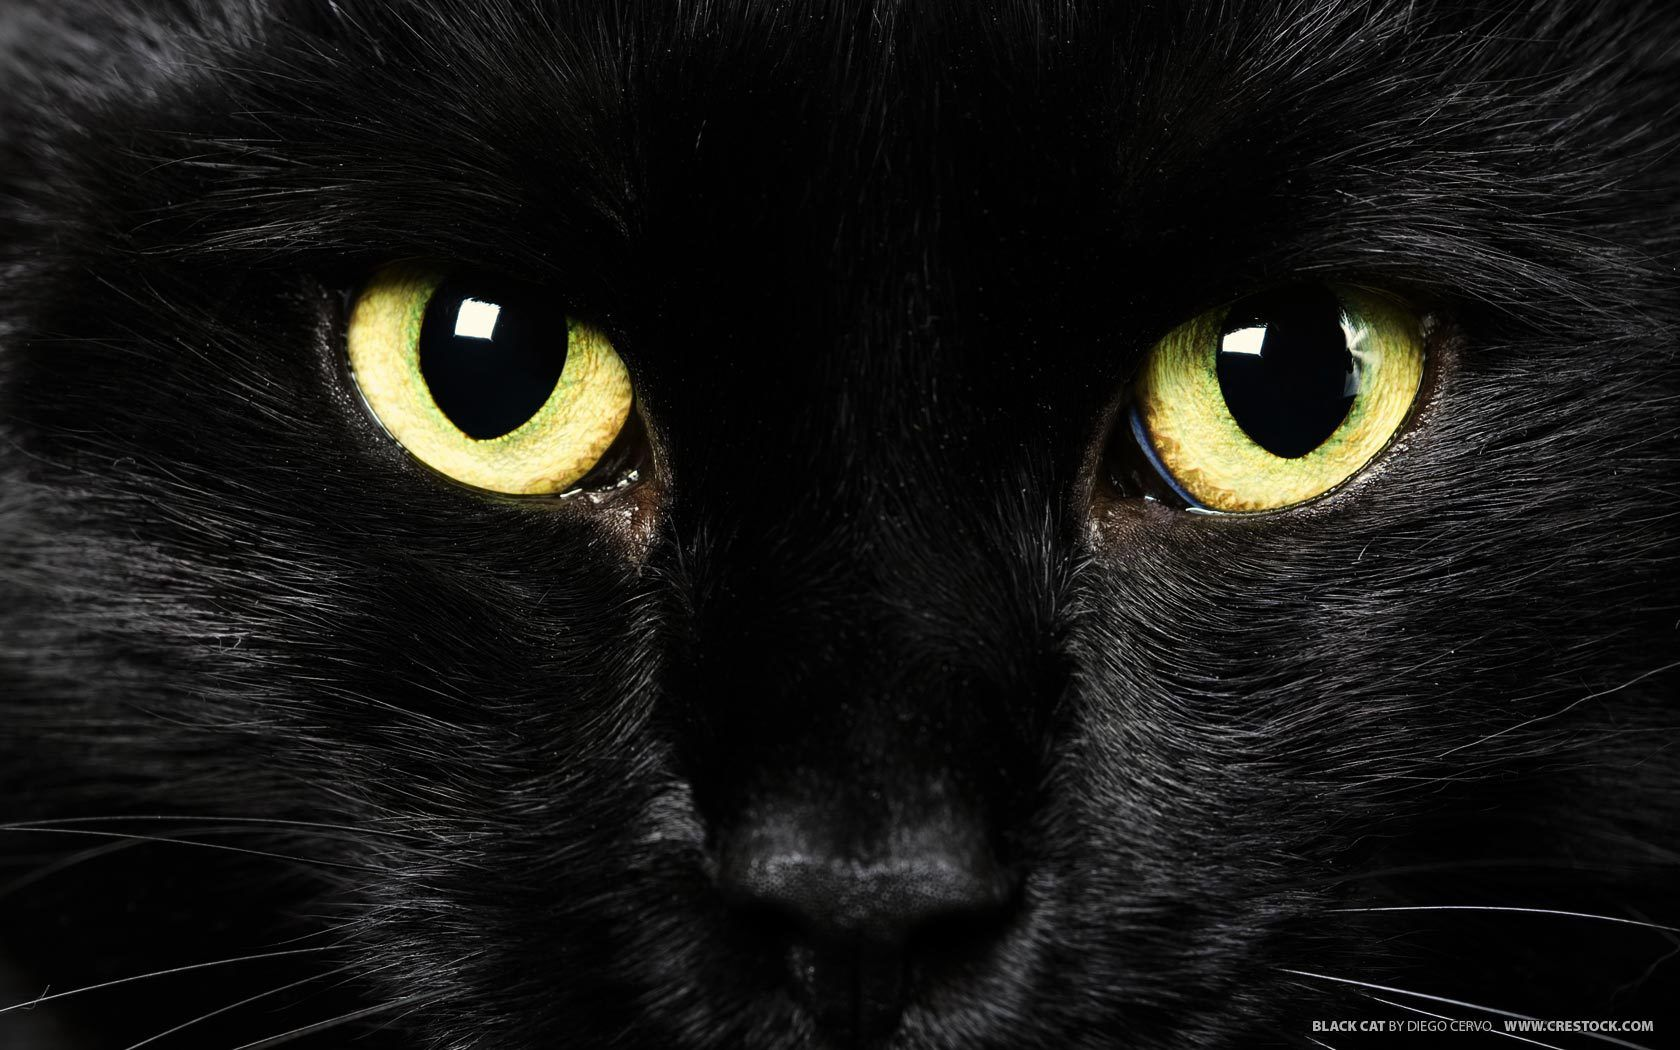 Pin by Tamara Shanks on Hello Yellow! Black cat, Black